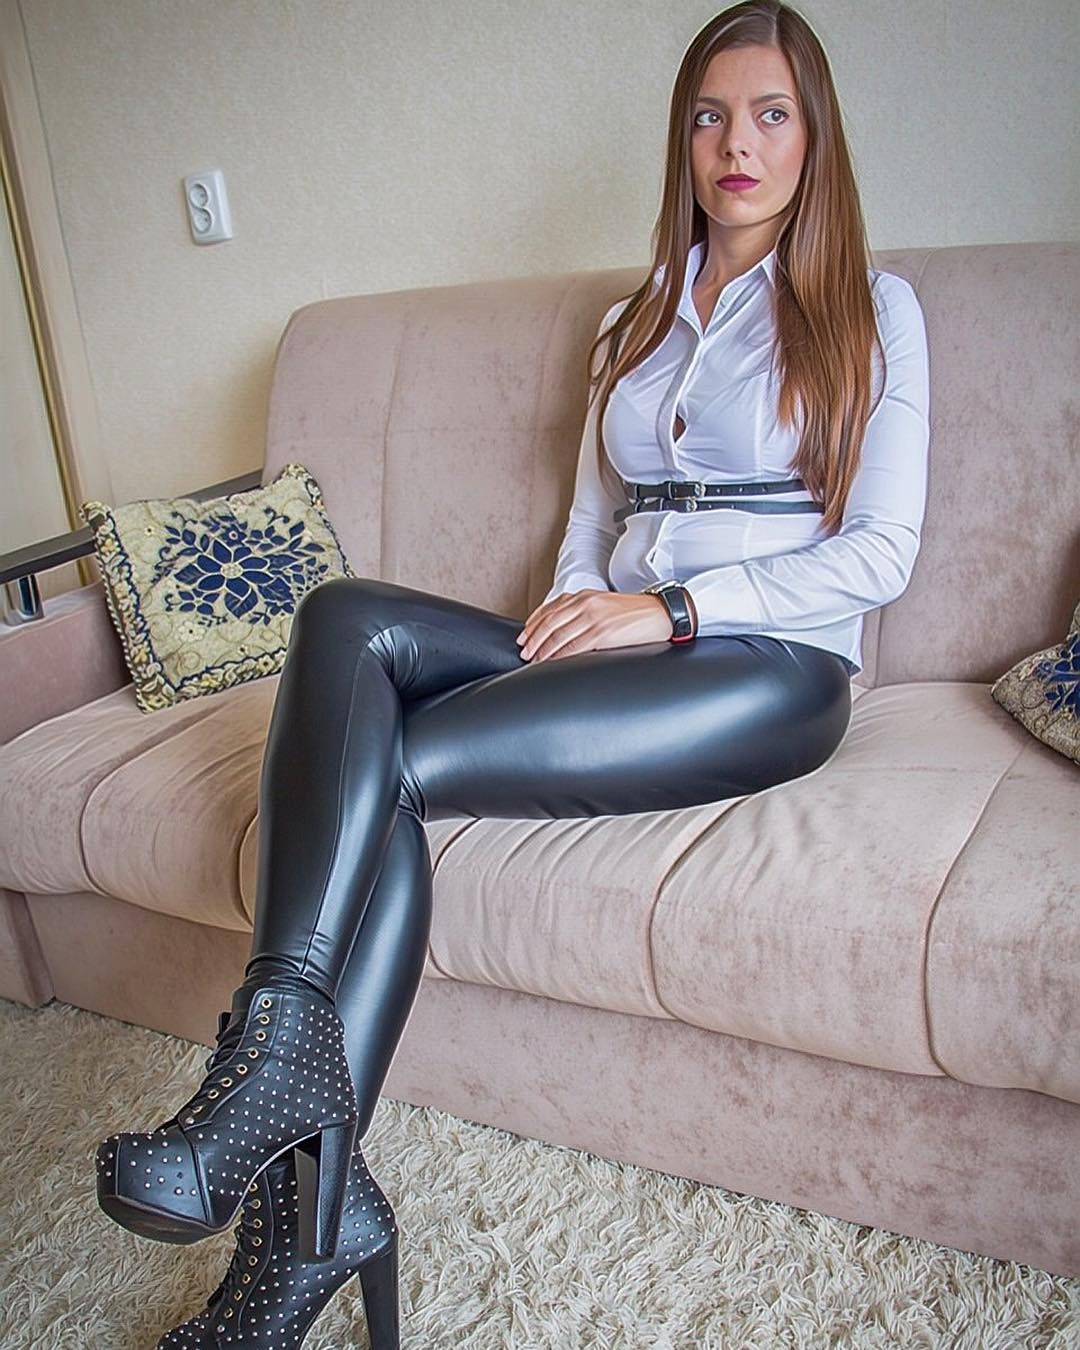 amateur model in leather strap harness corset leather leggings and ankle boots sitting on couch. Black Bedroom Furniture Sets. Home Design Ideas